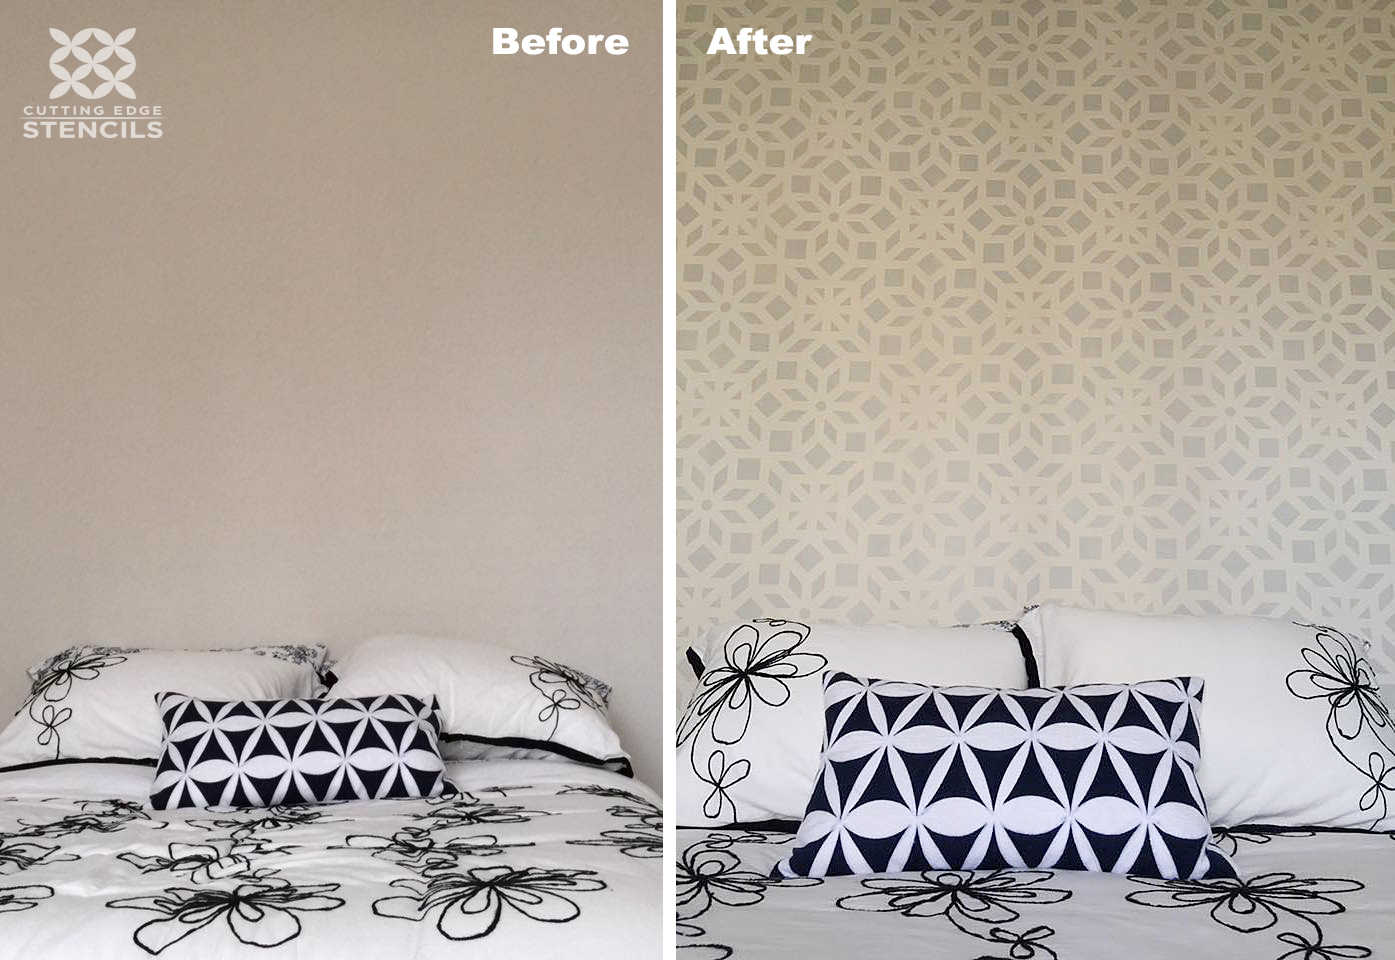 A before and after of a stenciled bedroom accent wall using the Kerala Allover Stencil, an Indian inspired wallpaper pattern, from Cutting Edge Stencils. http://www.cuttingedgestencils.com/kerala-indian-stencil-geometric-pattern-stencils.html